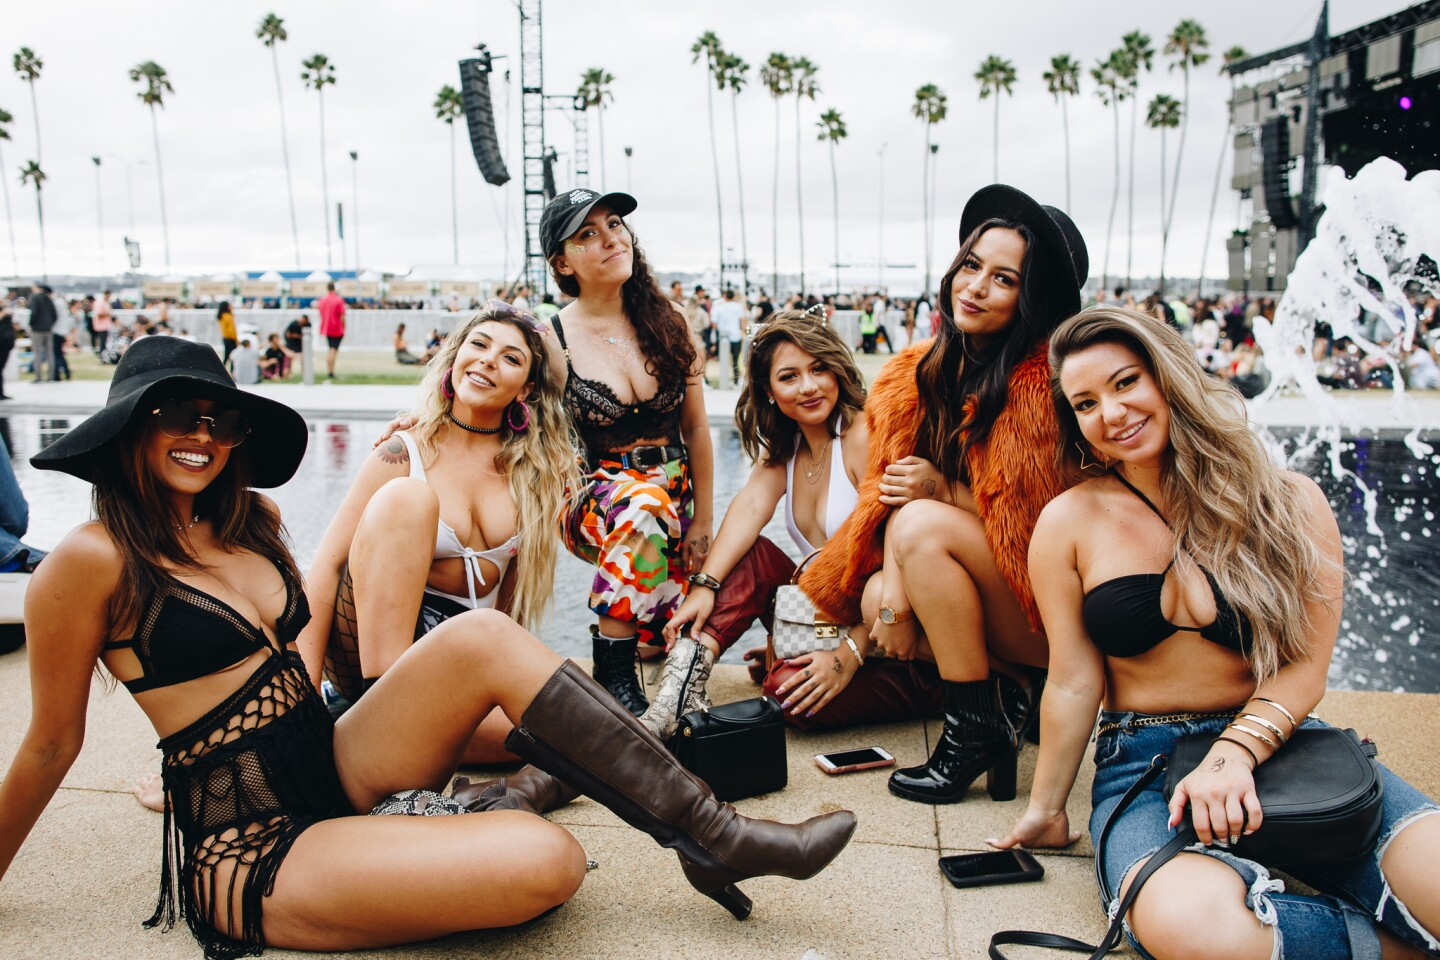 It was all about festival looks, live music and good times on Day One of CRSSD Fest at Waterfront Park on Saturday, Sept. 28, 2019.